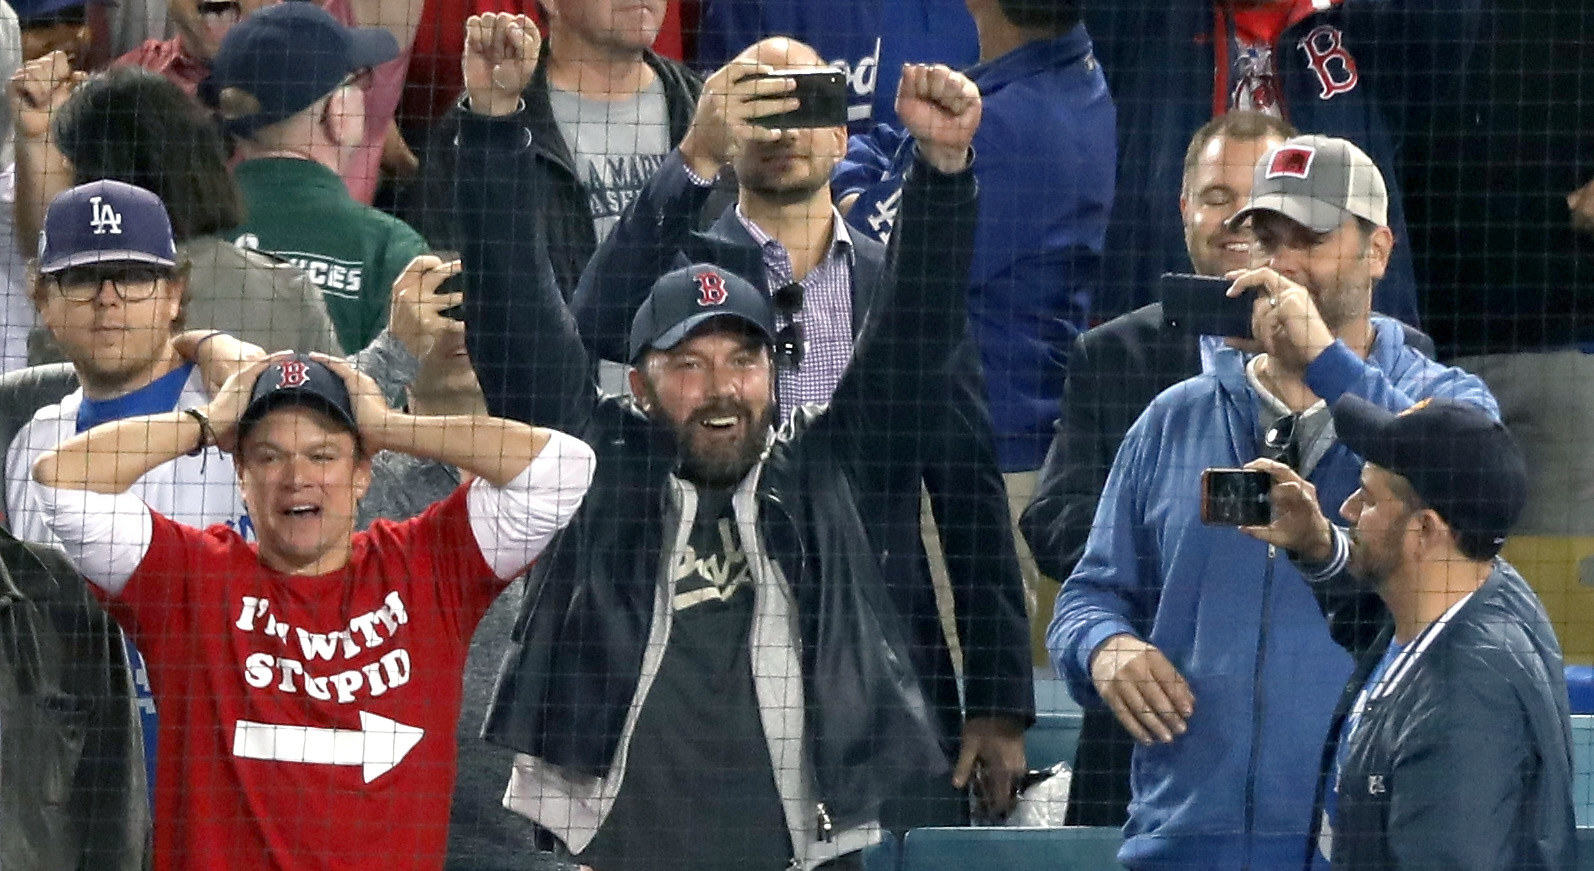 And because he's from Boston, he LOVES the Patriots and the Red Sox.